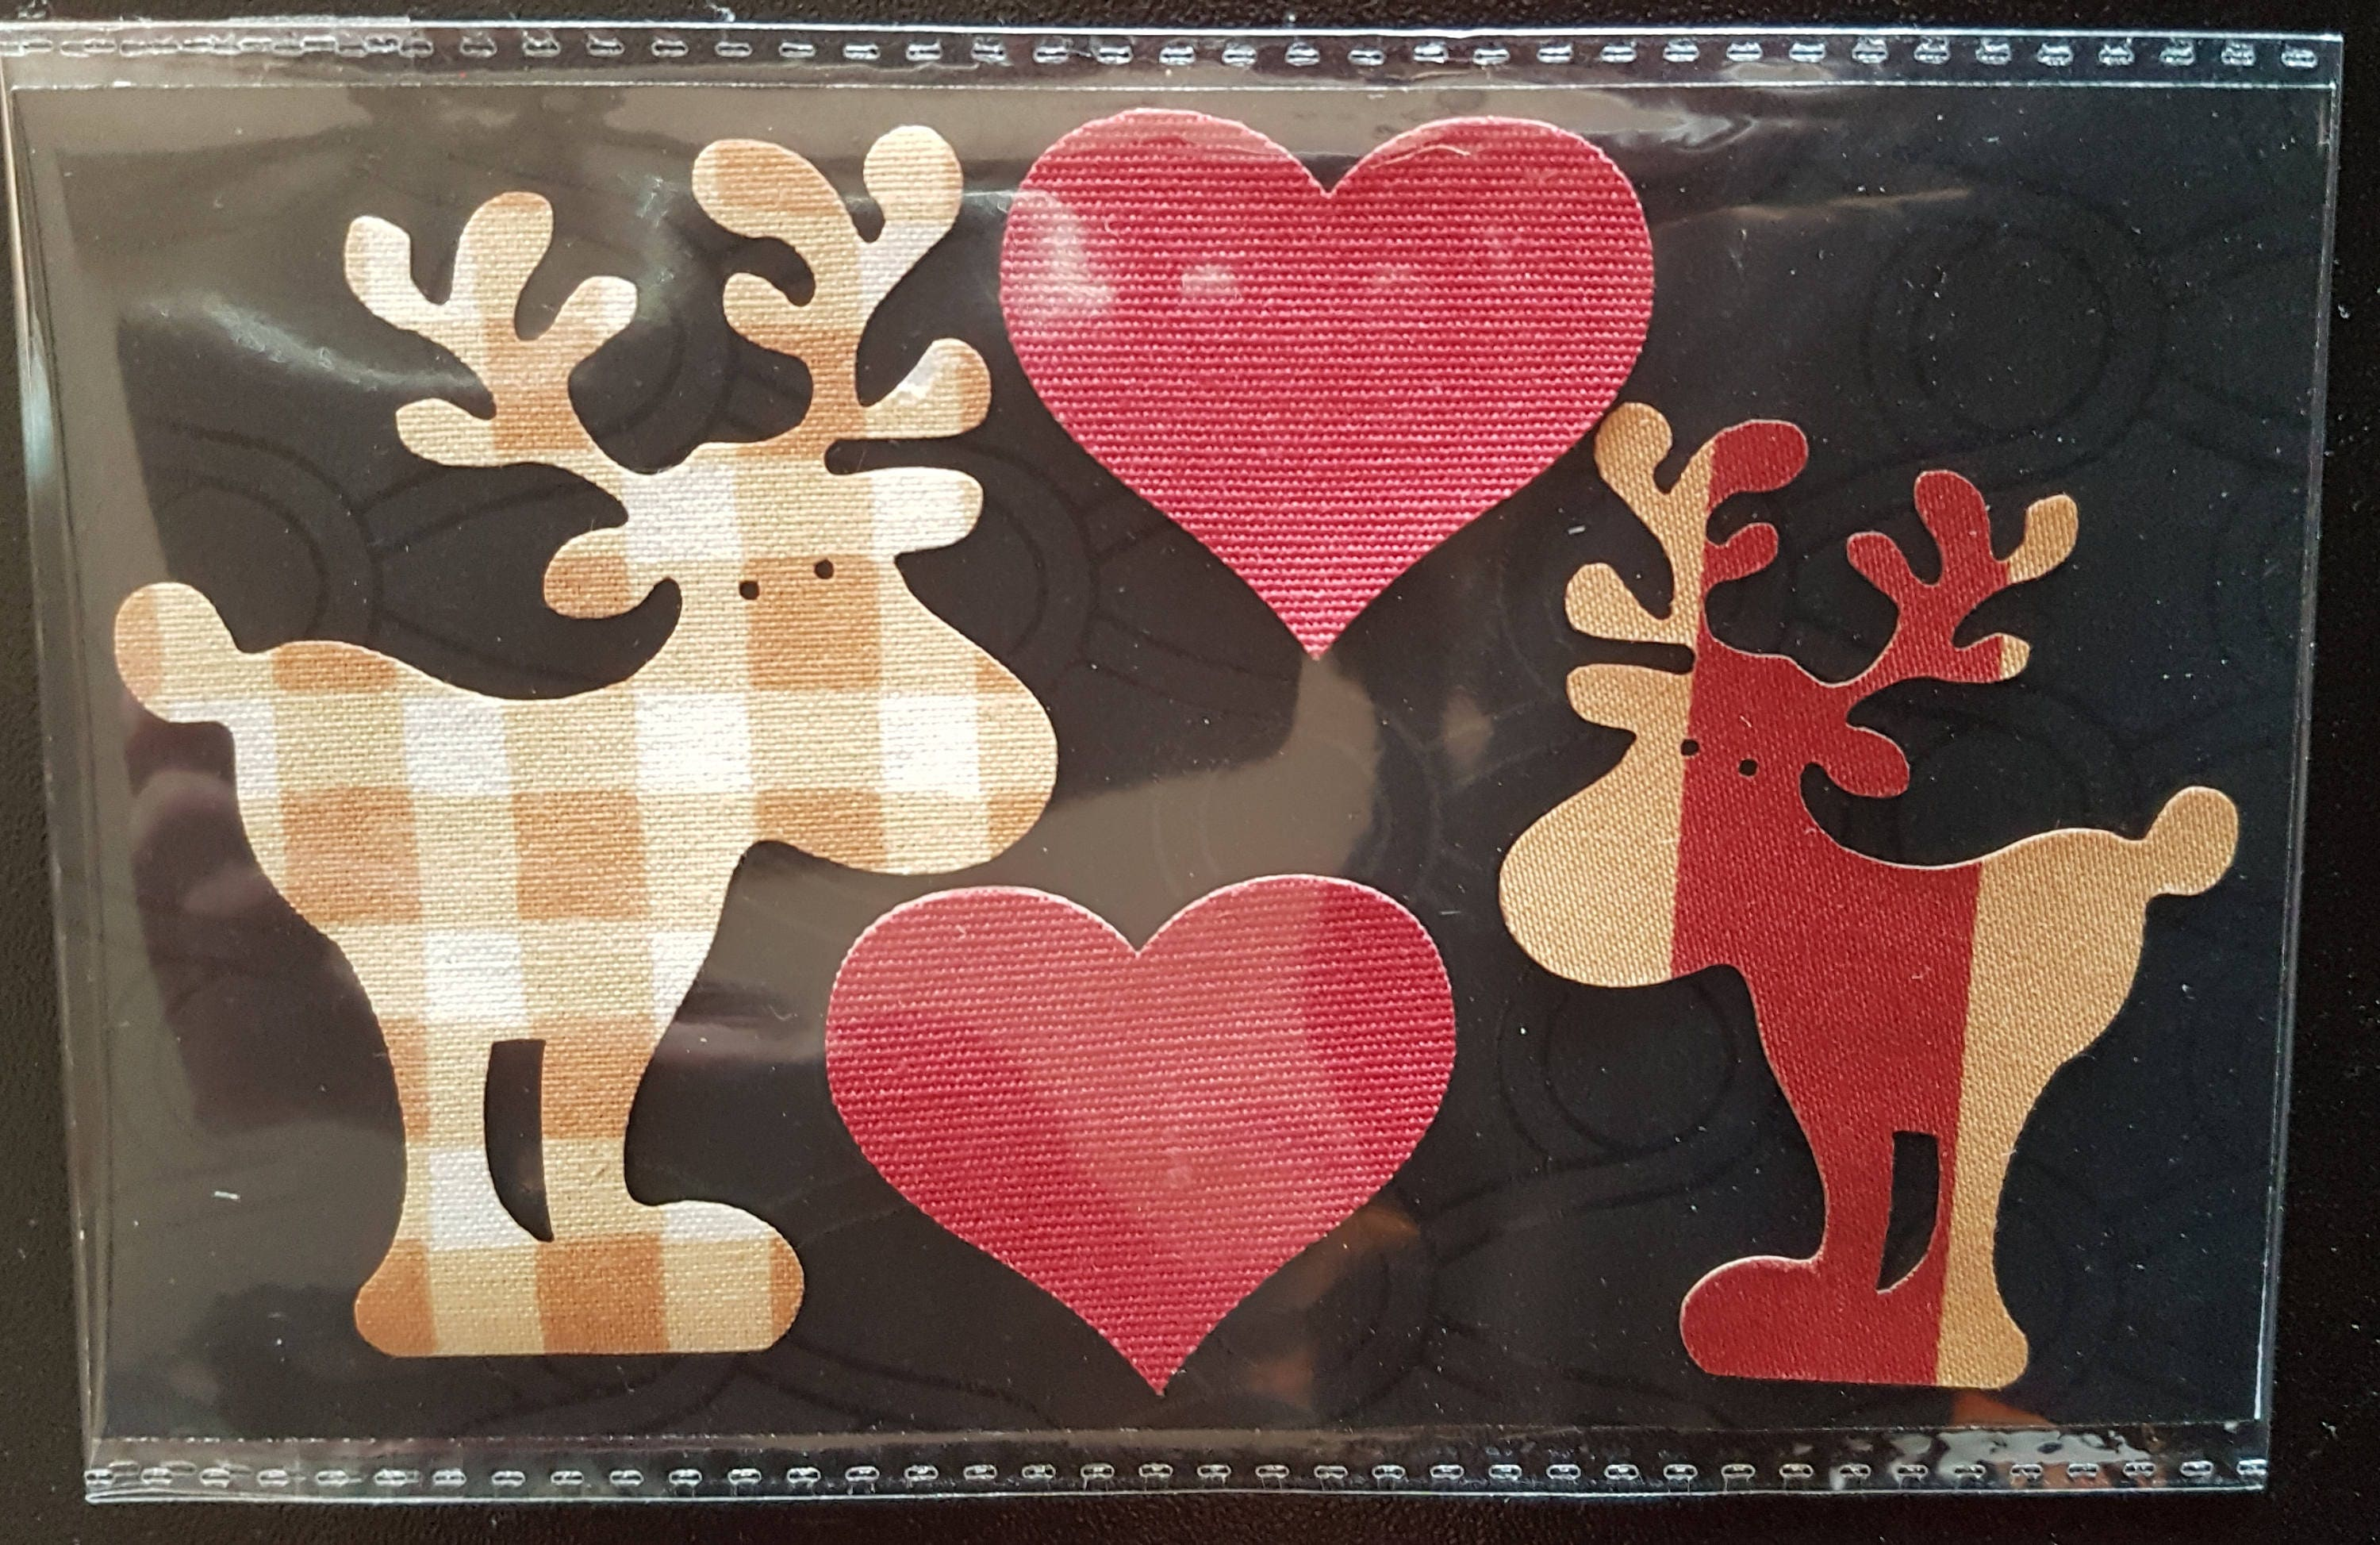 Adhesive patches reindeer hearts to be applied on pillows